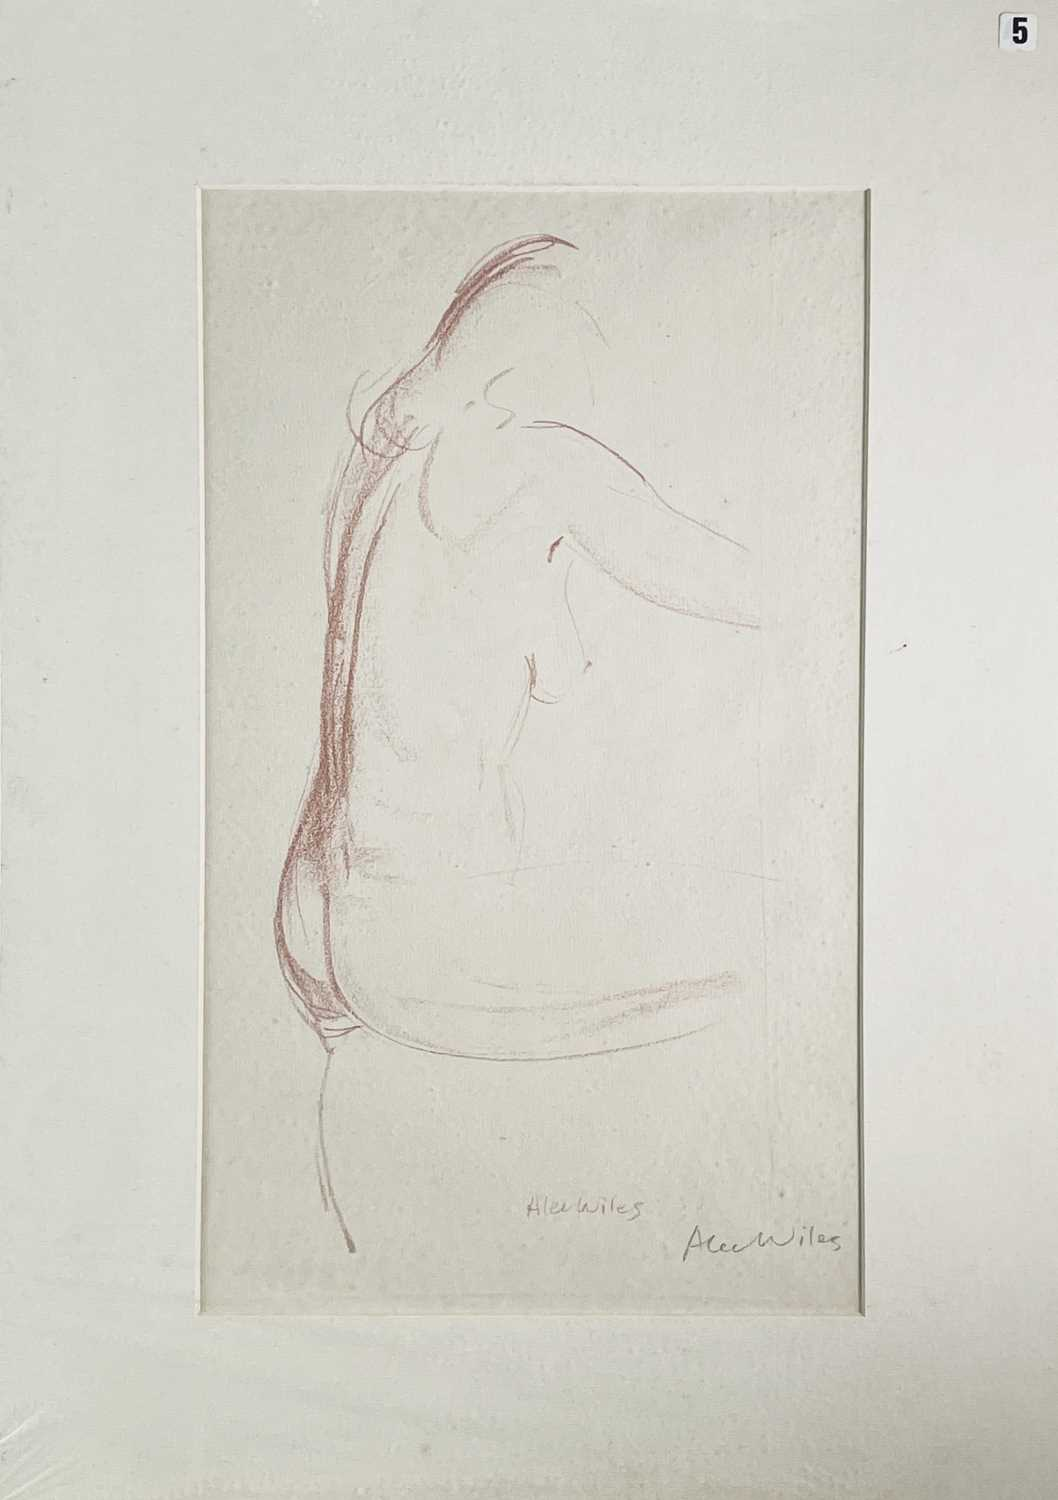 Alec WILES (1924) Various works including prints - Image 19 of 30